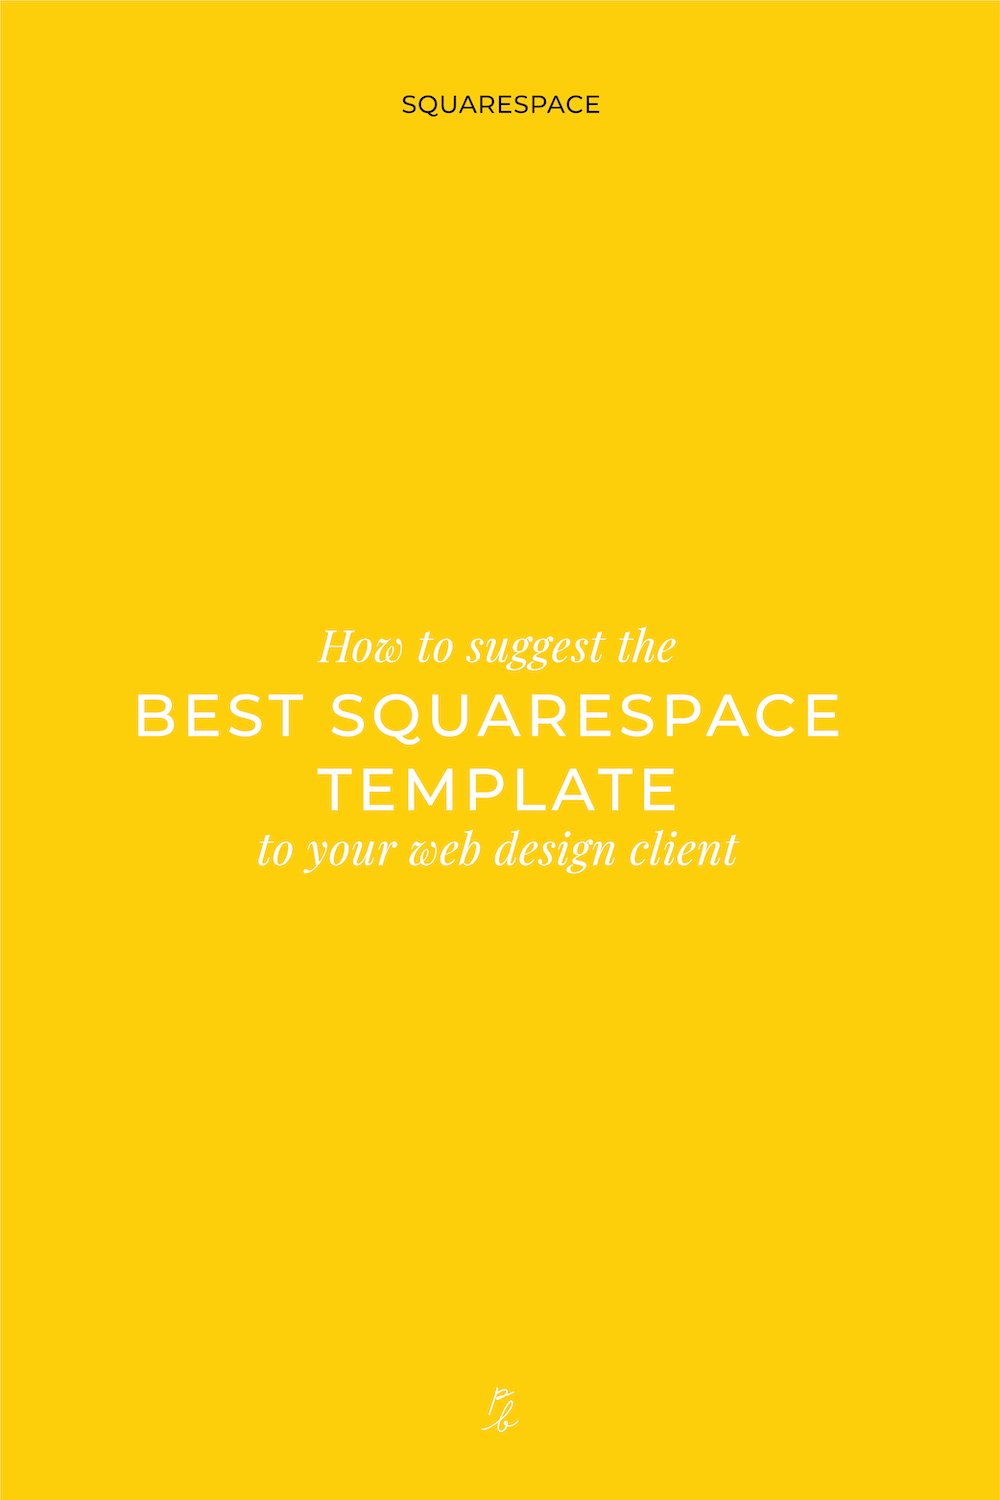 5-How to suggest the best squarespace template to your web design client.jpg